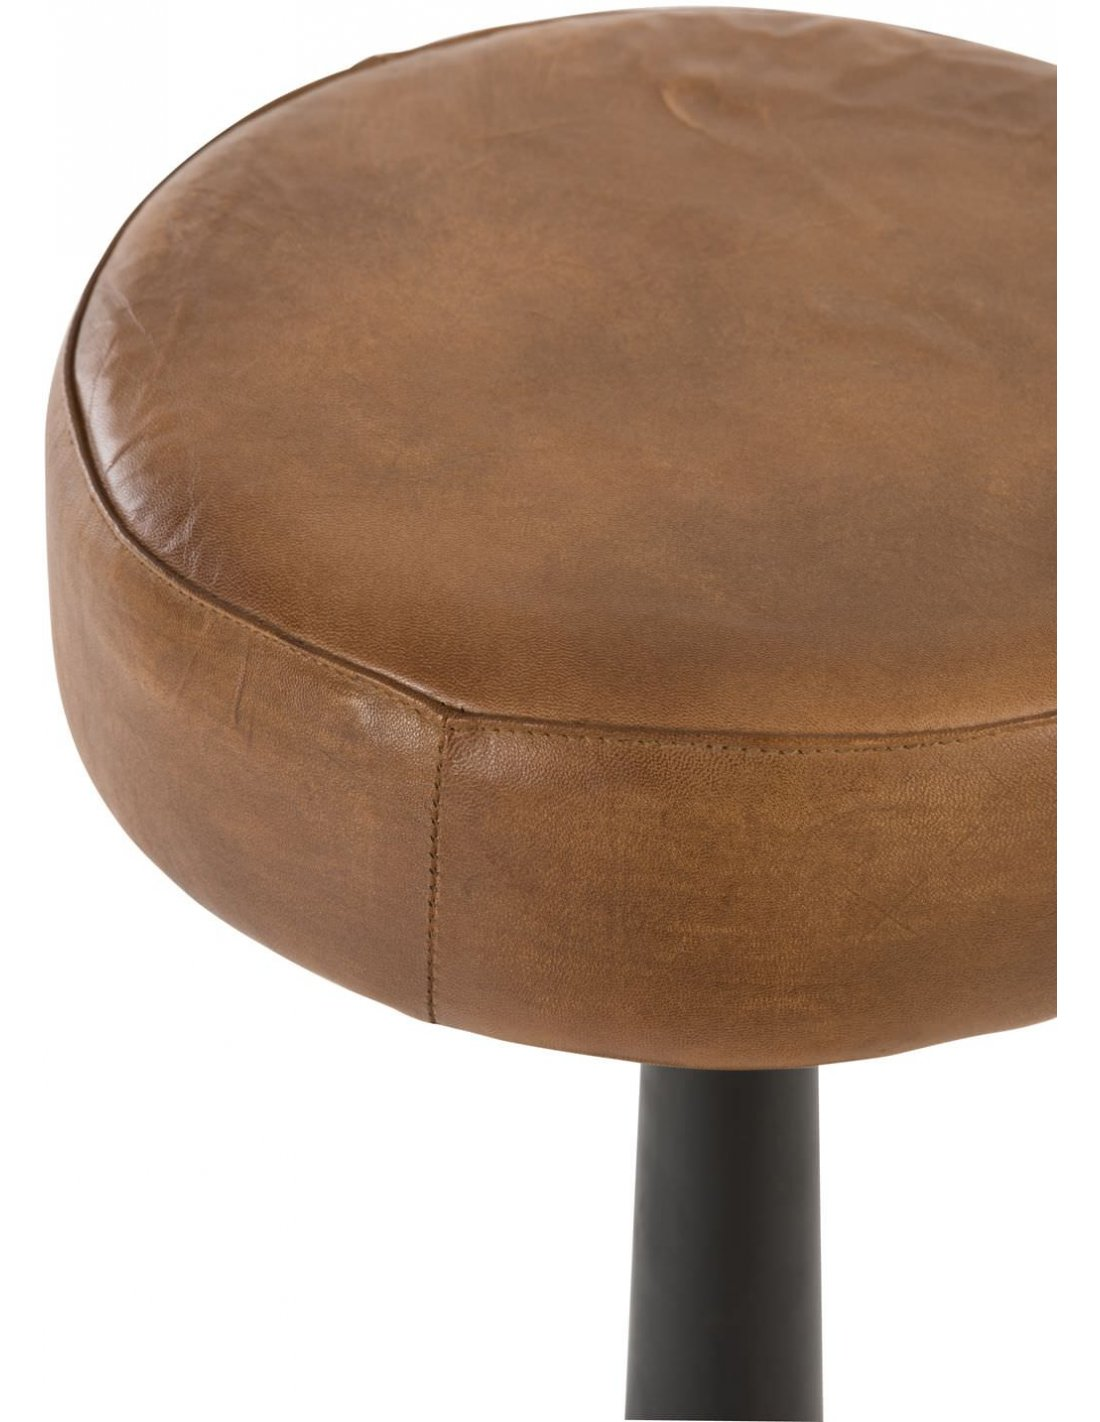 Chaise De Bar En Cuir X2 Tabouret De Bar Cuir Metal Bonnie Rock By J Line à 415 90 Chez